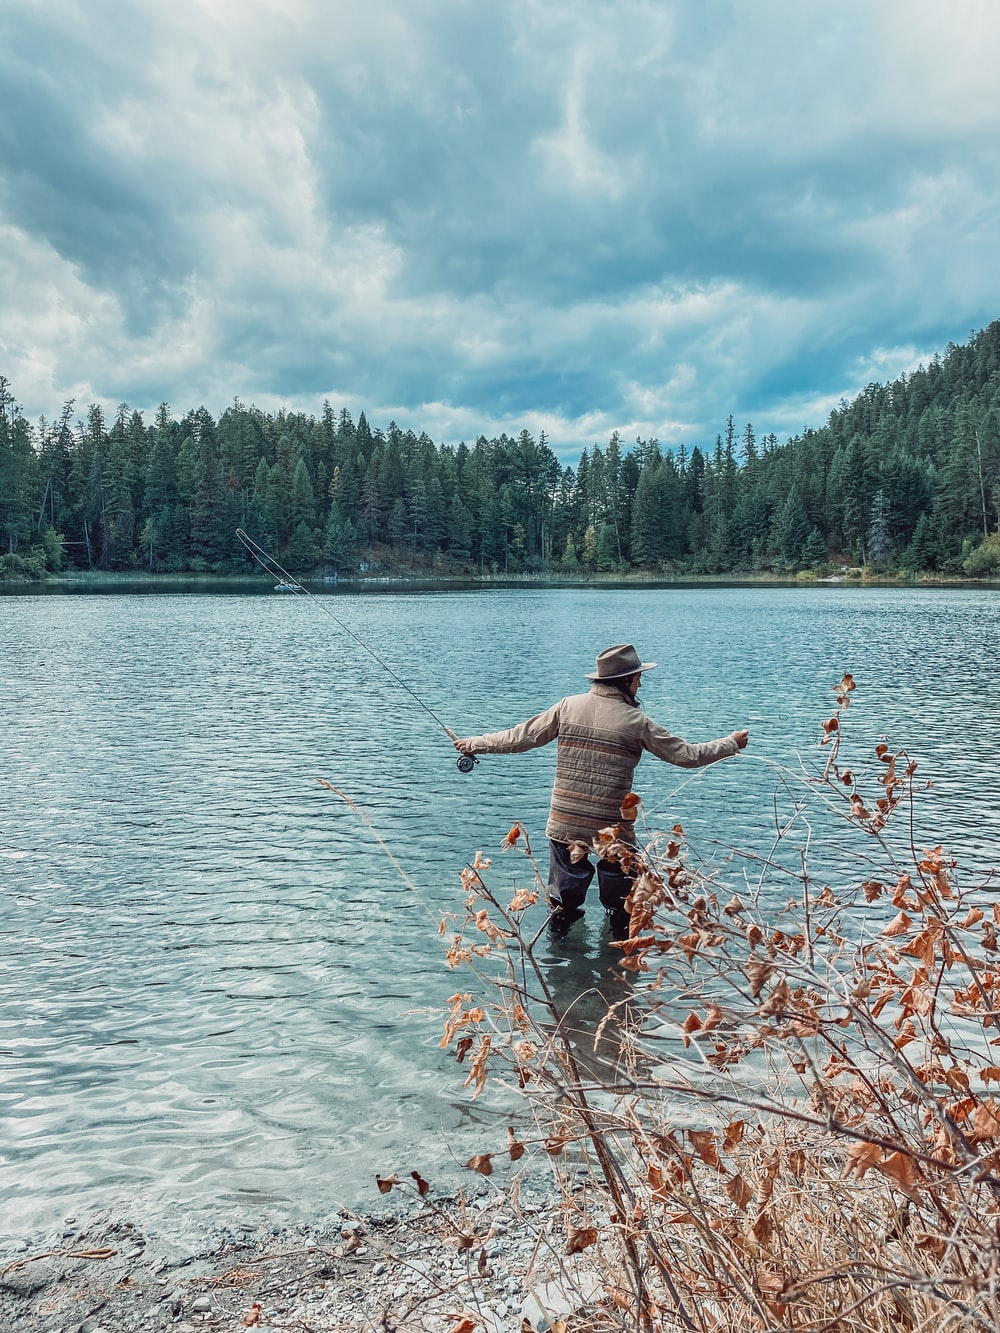 man in black shorts standing on body of water during daytime